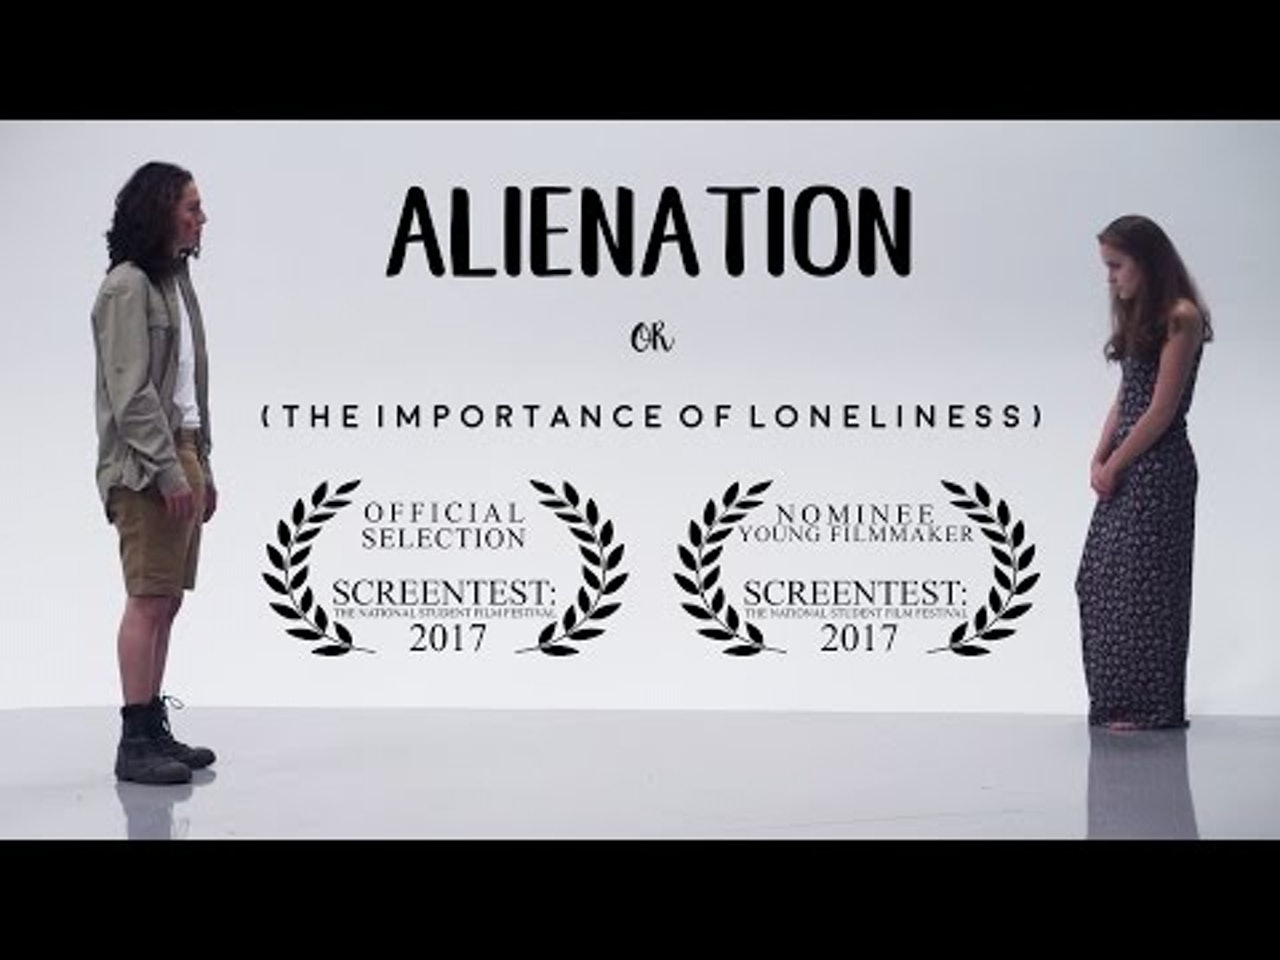 Alienation or (The Importance of Loneliness) - A Short Film